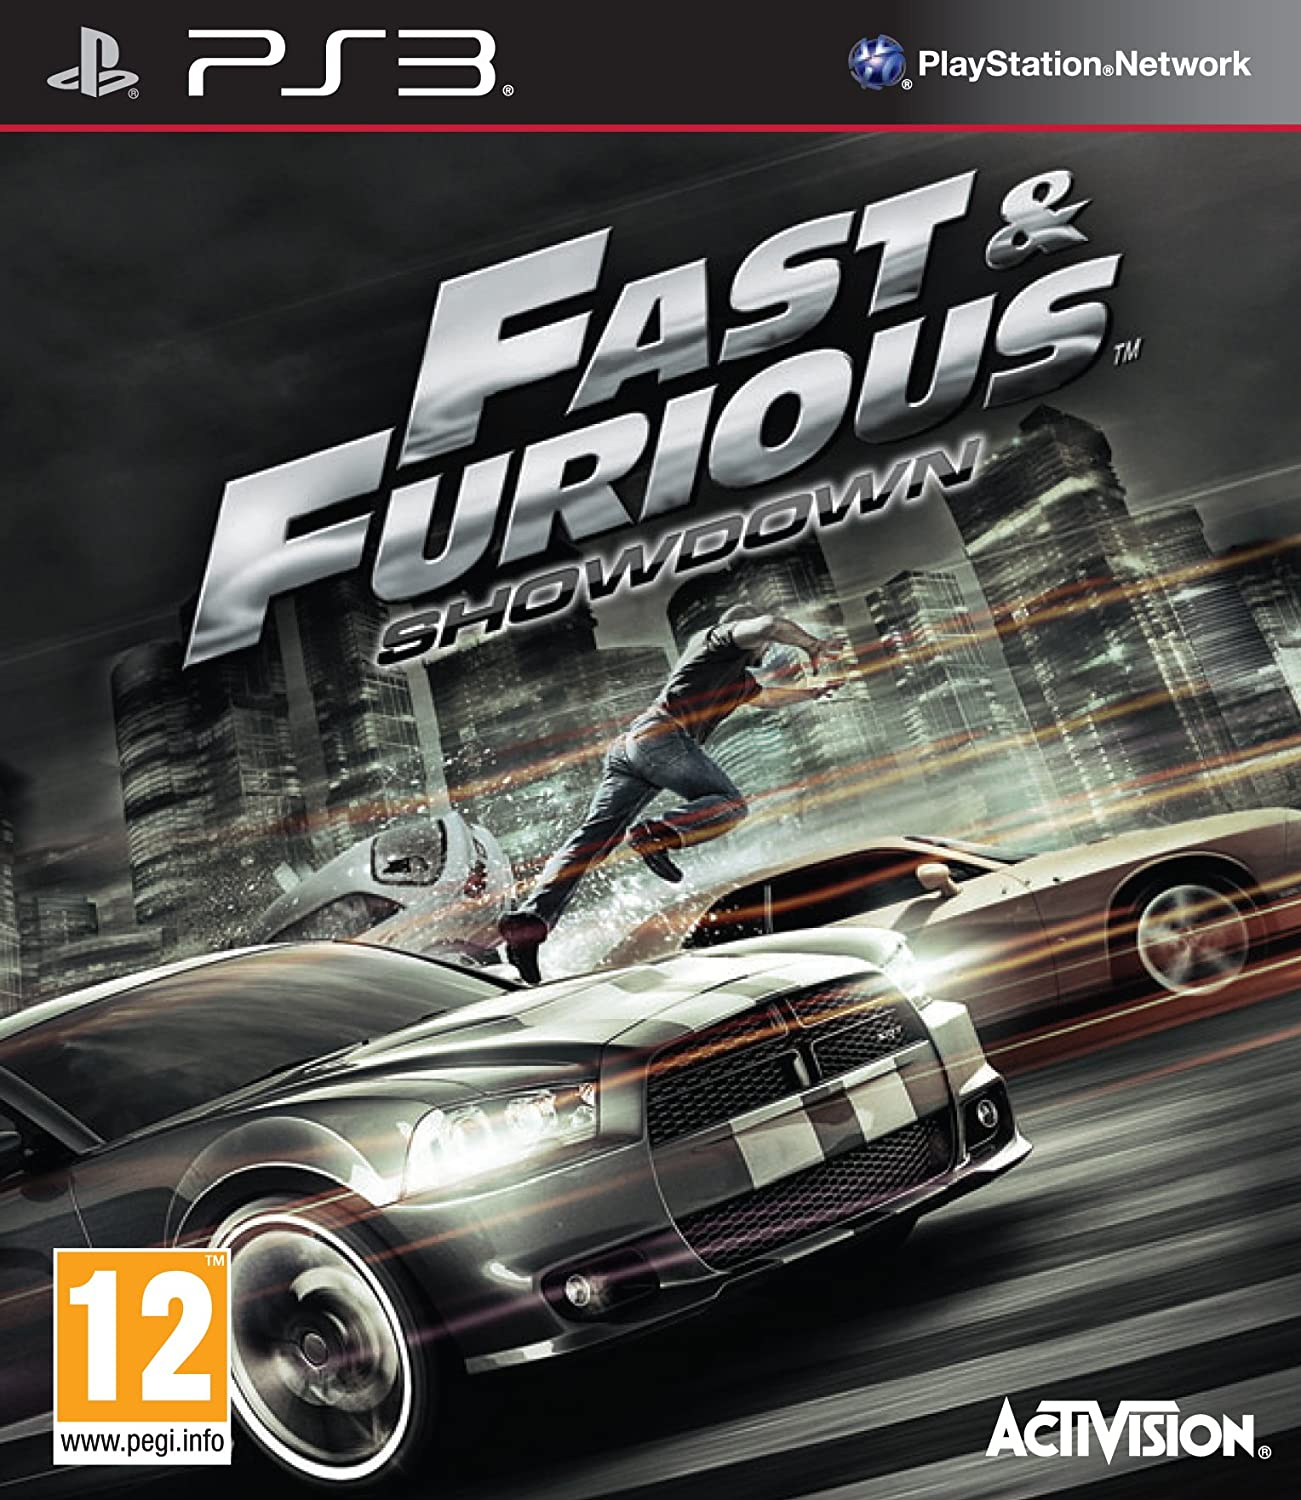 Fast and Furious Showdown Inexpensive Sony Playstation Game 3 PAL 4 years warranty UK PS3